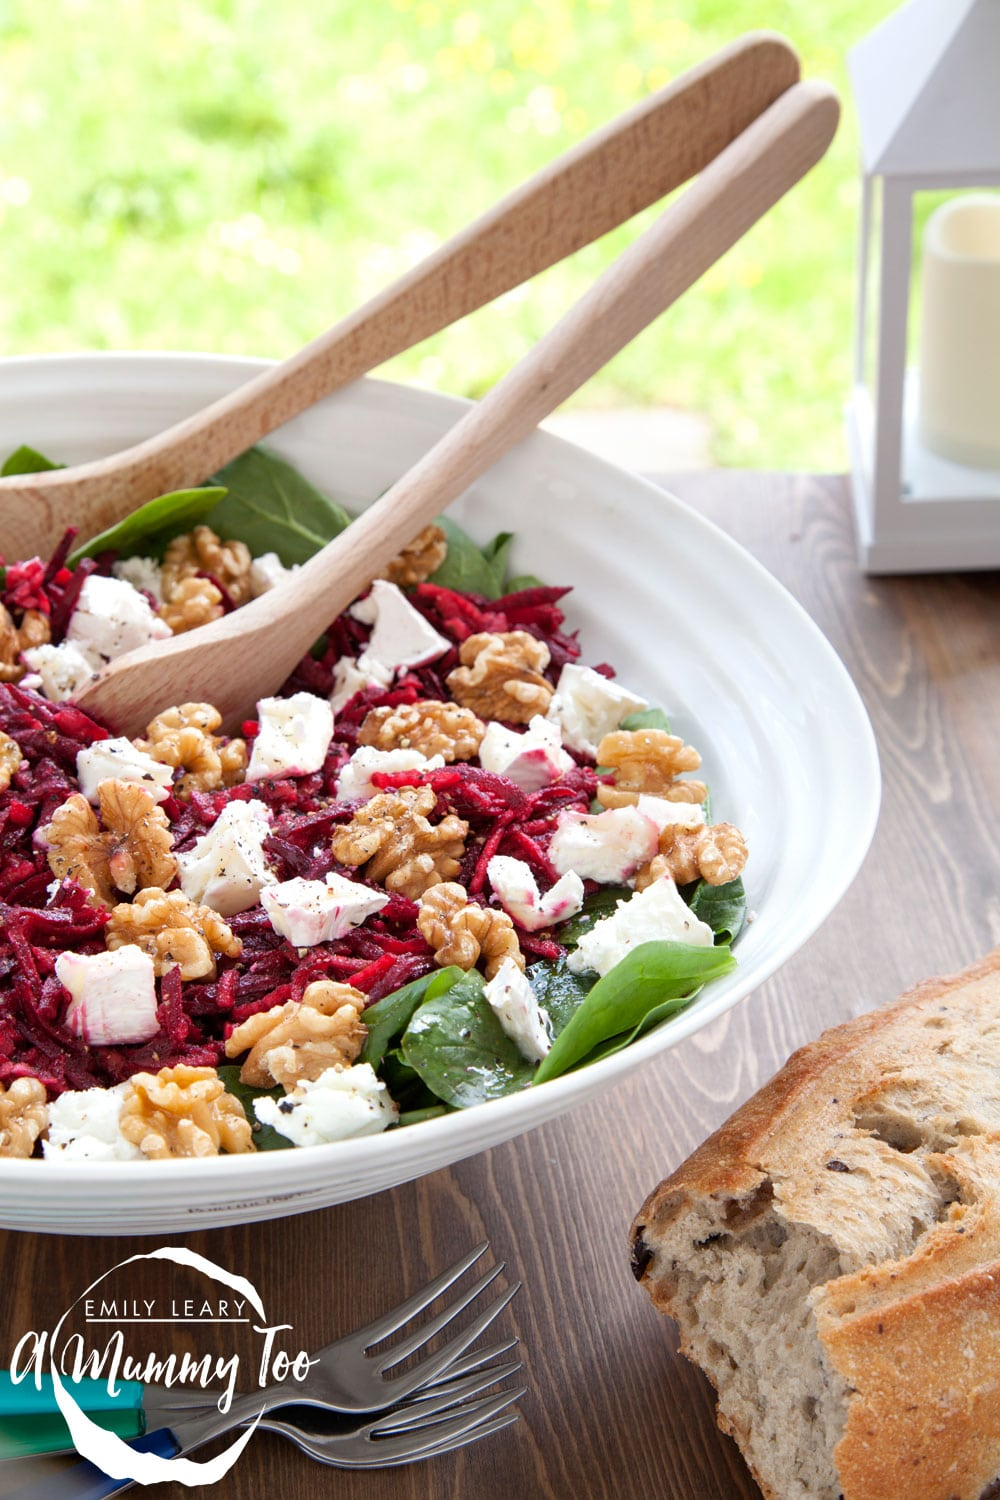 A bramley apple and beetroot salad, topped with goat's cheese and walnuts